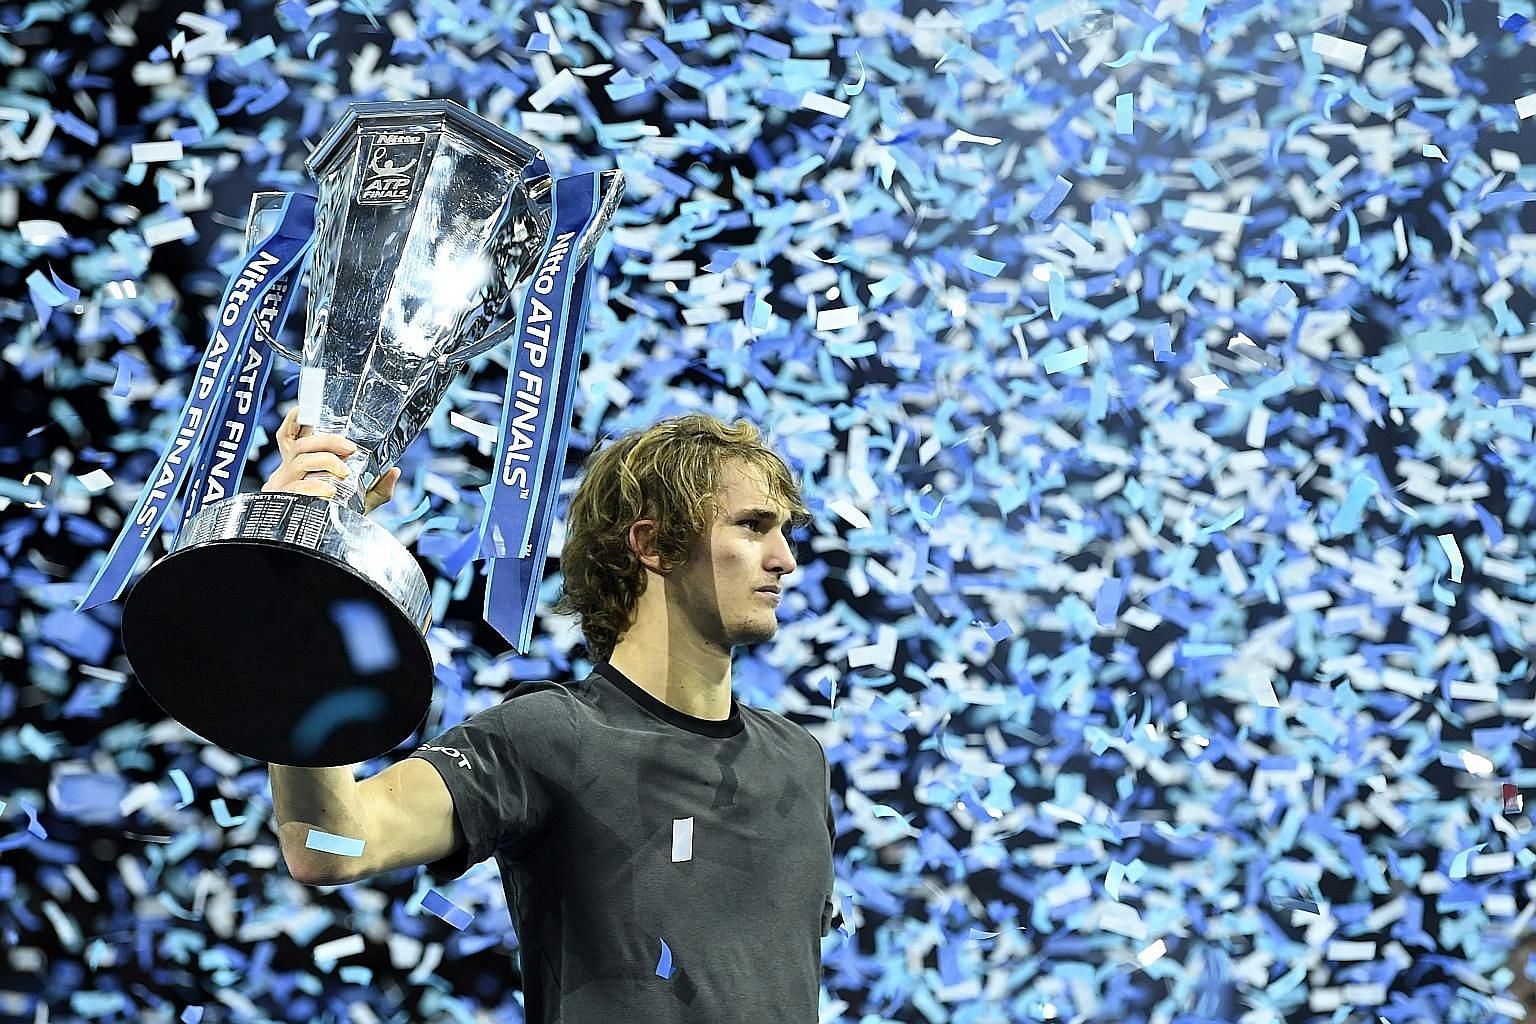 Alexander Zverev beat world No. 1 Novak Djokovic in straight sets in London on Sunday to win his first ATP Finals title.